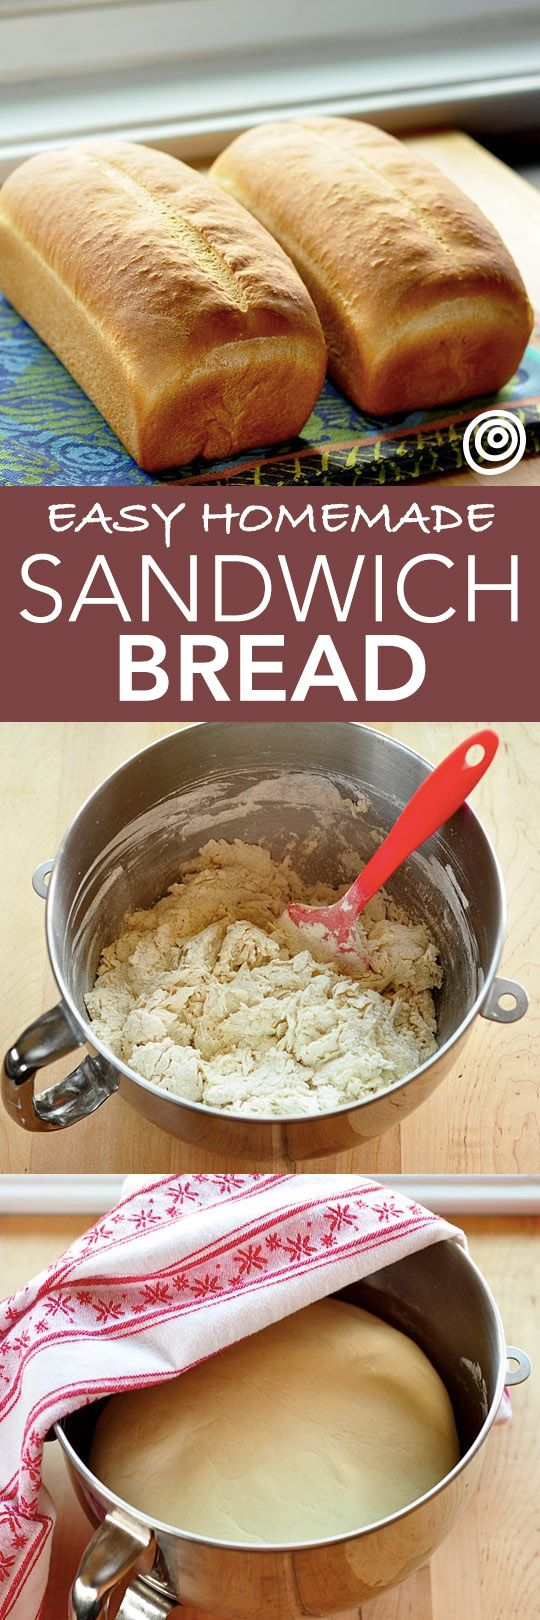 25 best ideas about loaf of bread on pinterest yeast bread recipes bread making and bread - Make delicious sweet bread christmas ...